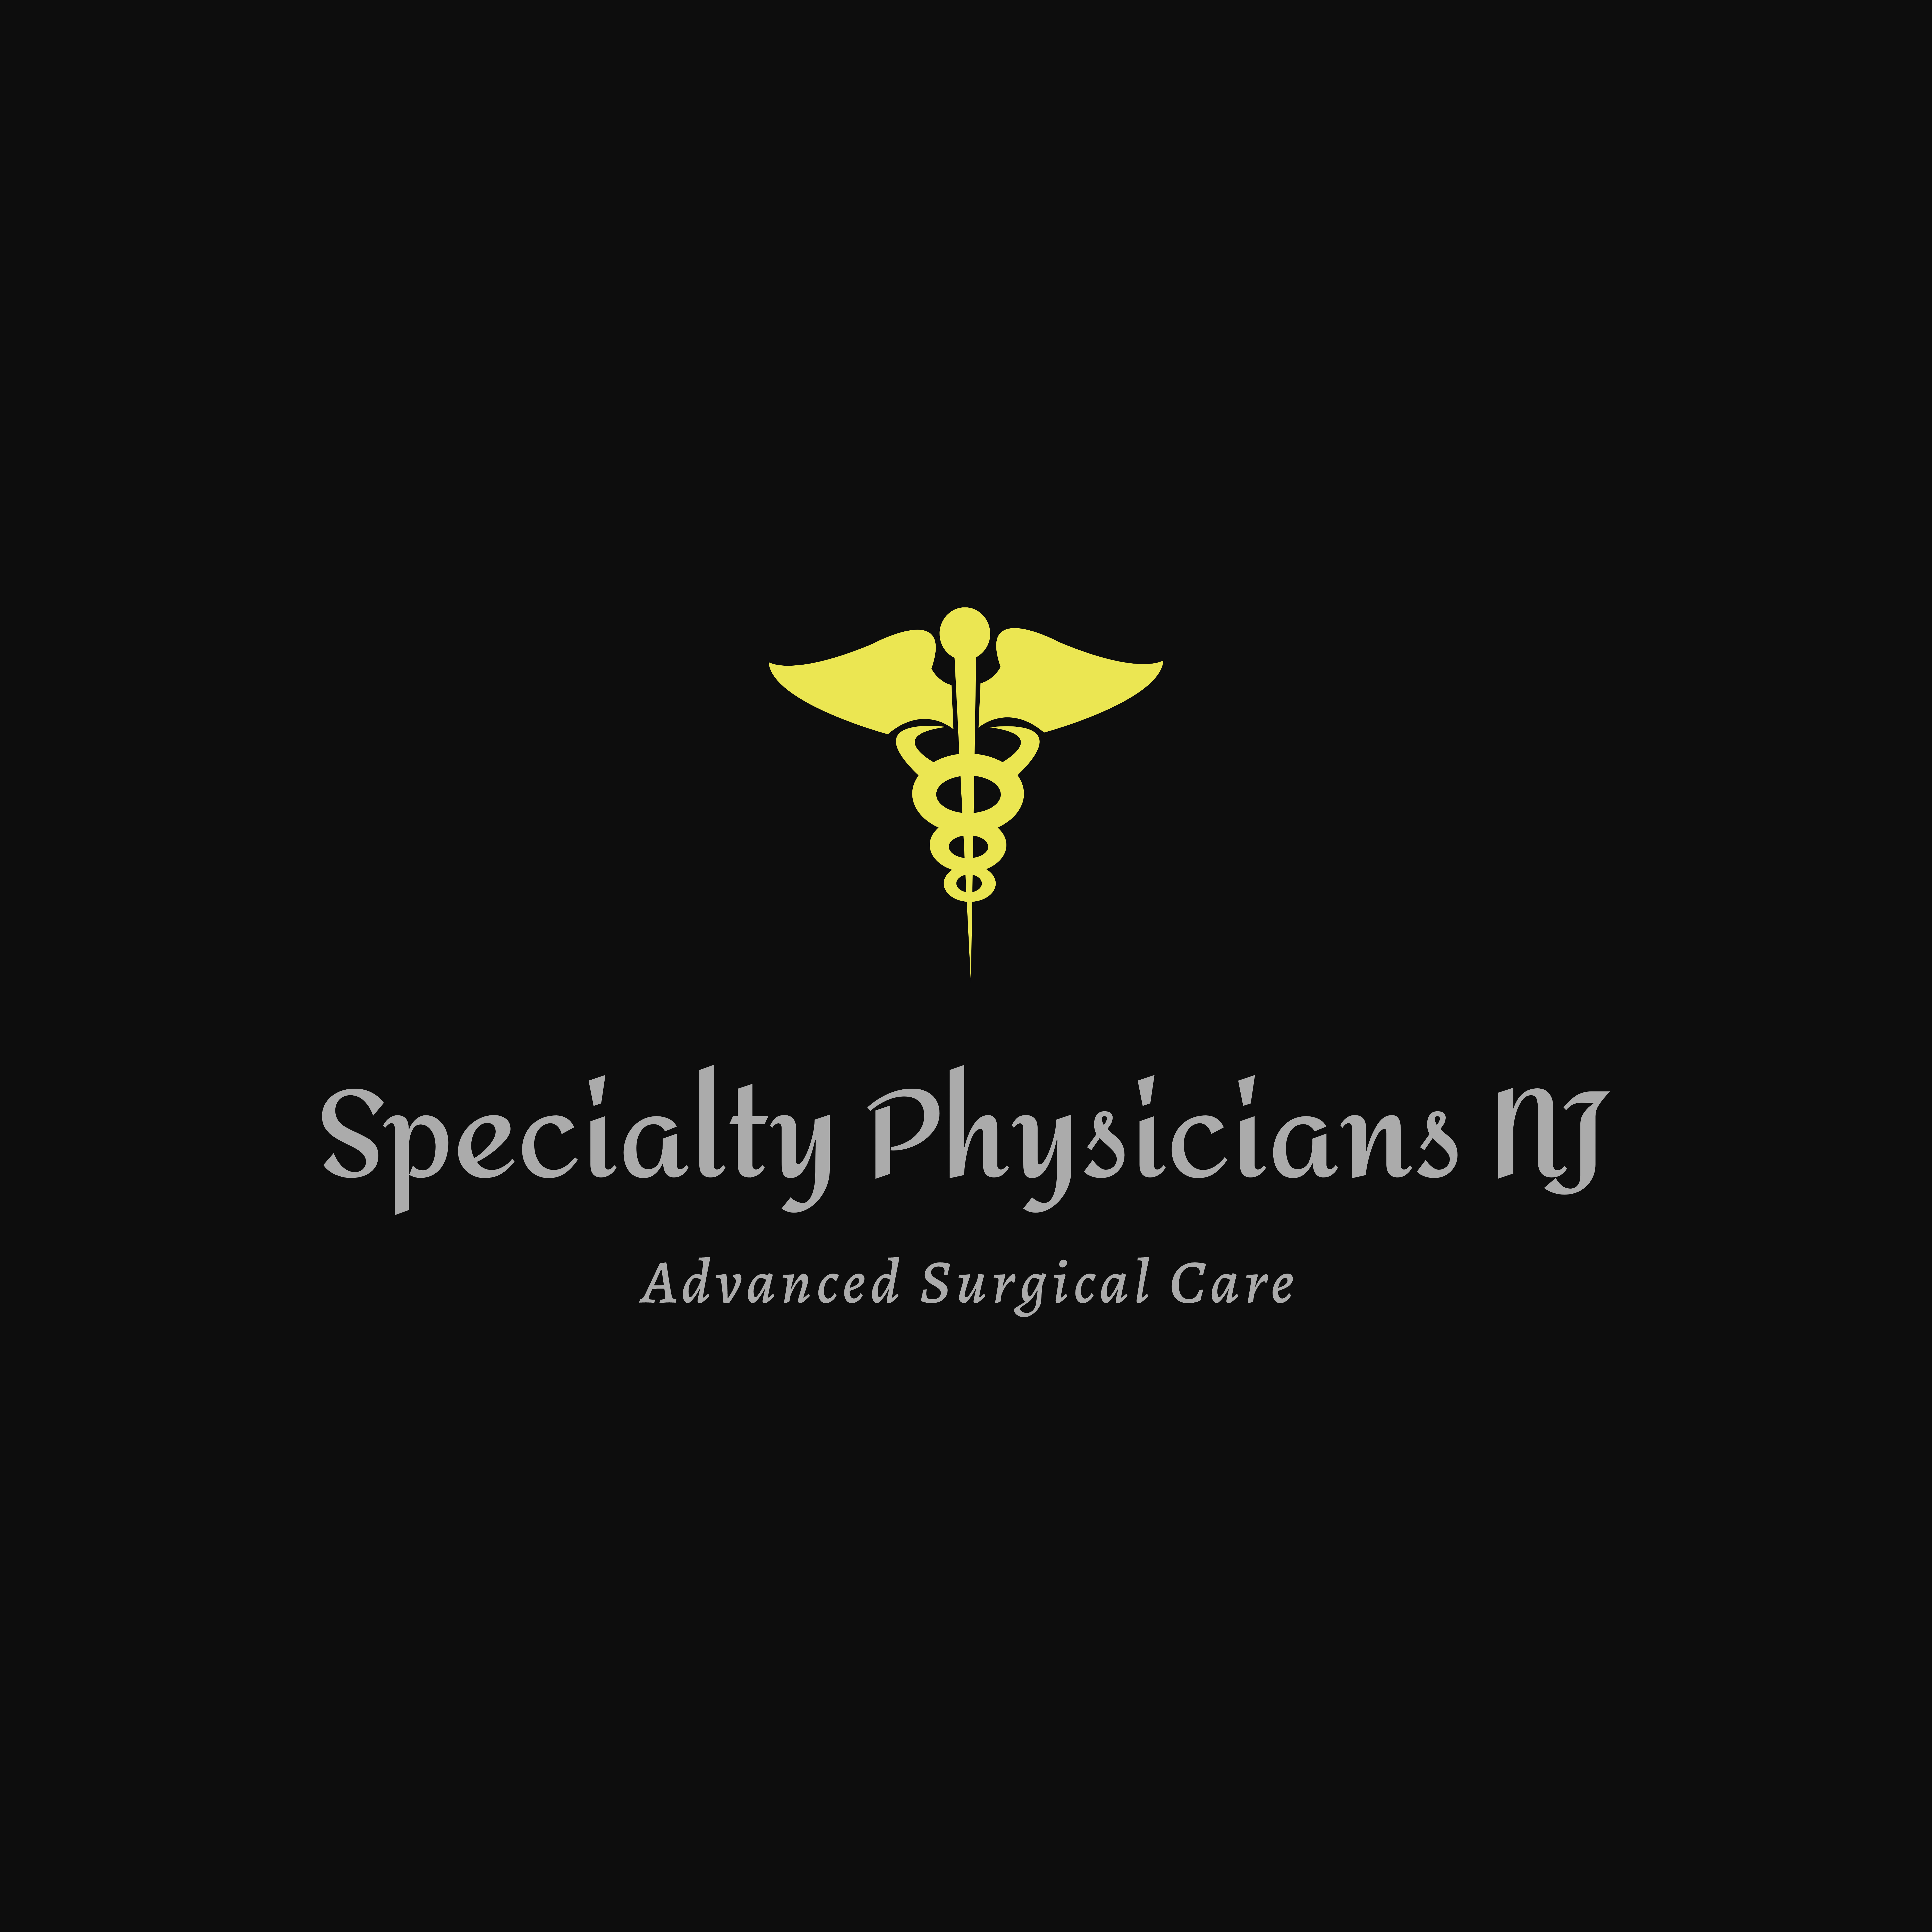 Specialty Physicians NJ